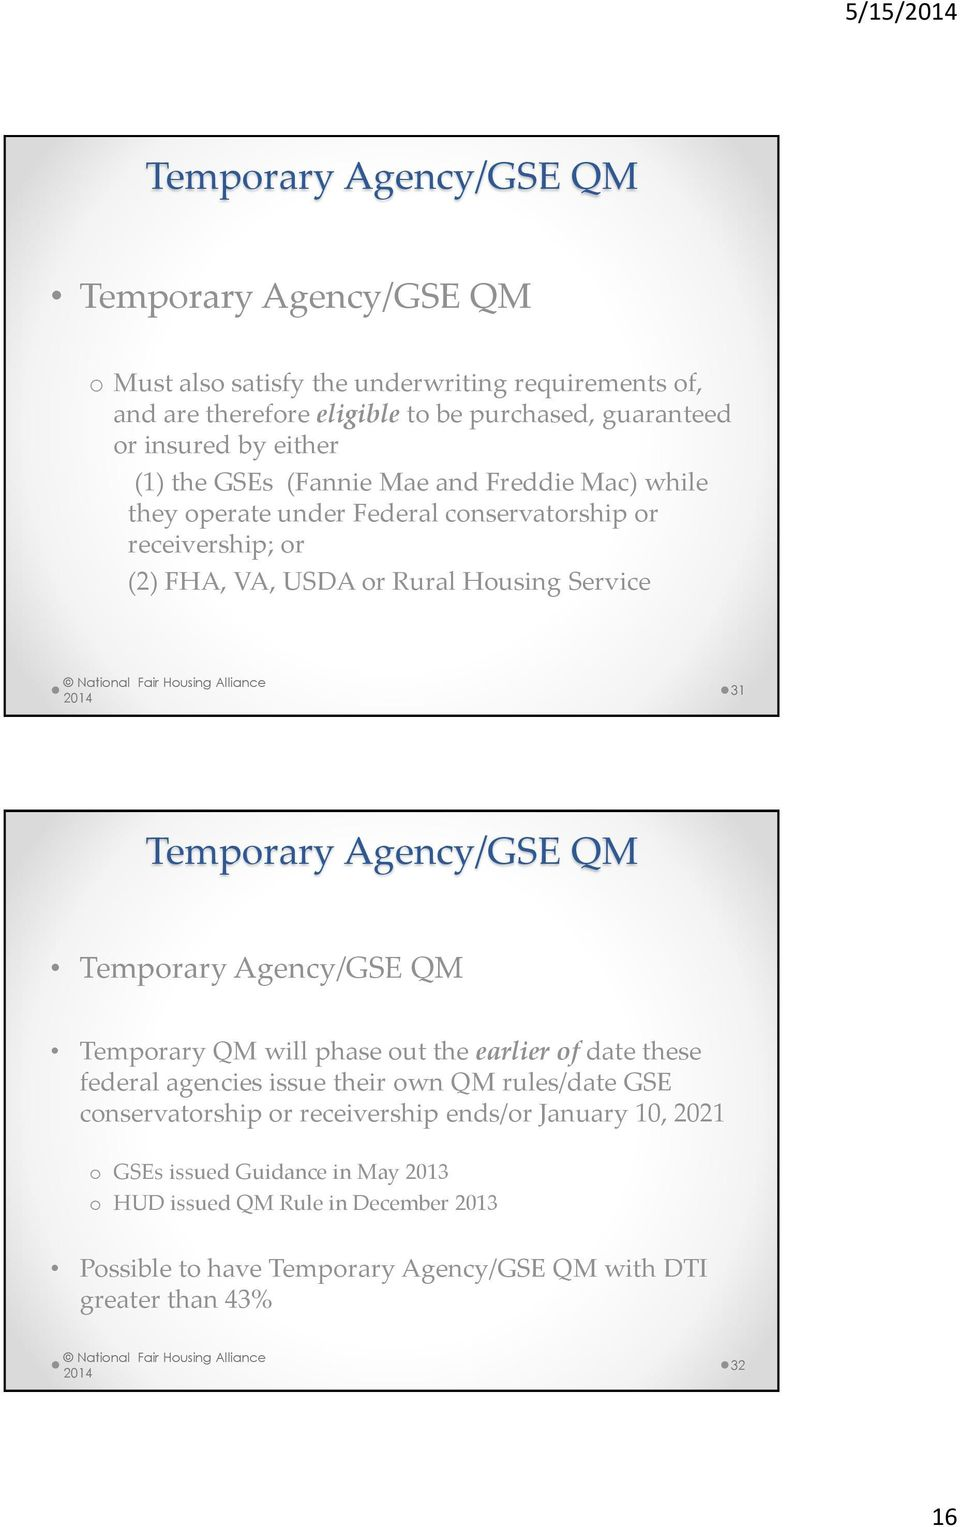 Temporary Agency/GSE QM Temporary Agency/GSE QM Temporary QM will phase out the earlier of date these federal agencies issue their own QM rules/date GSE conservatorship or